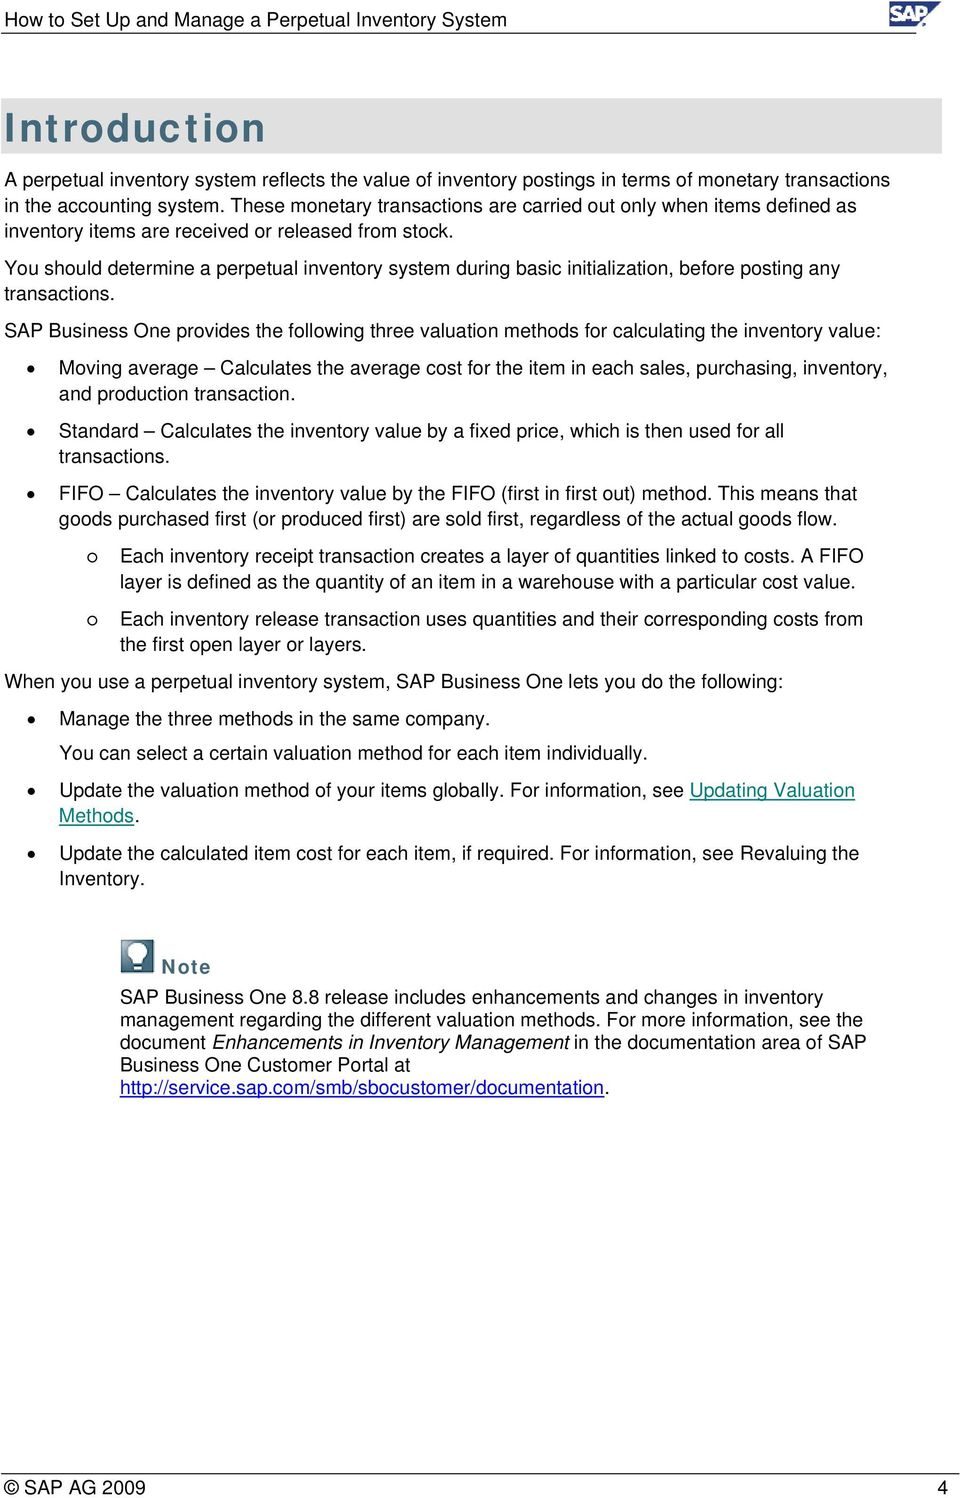 sales and inventory system documentation